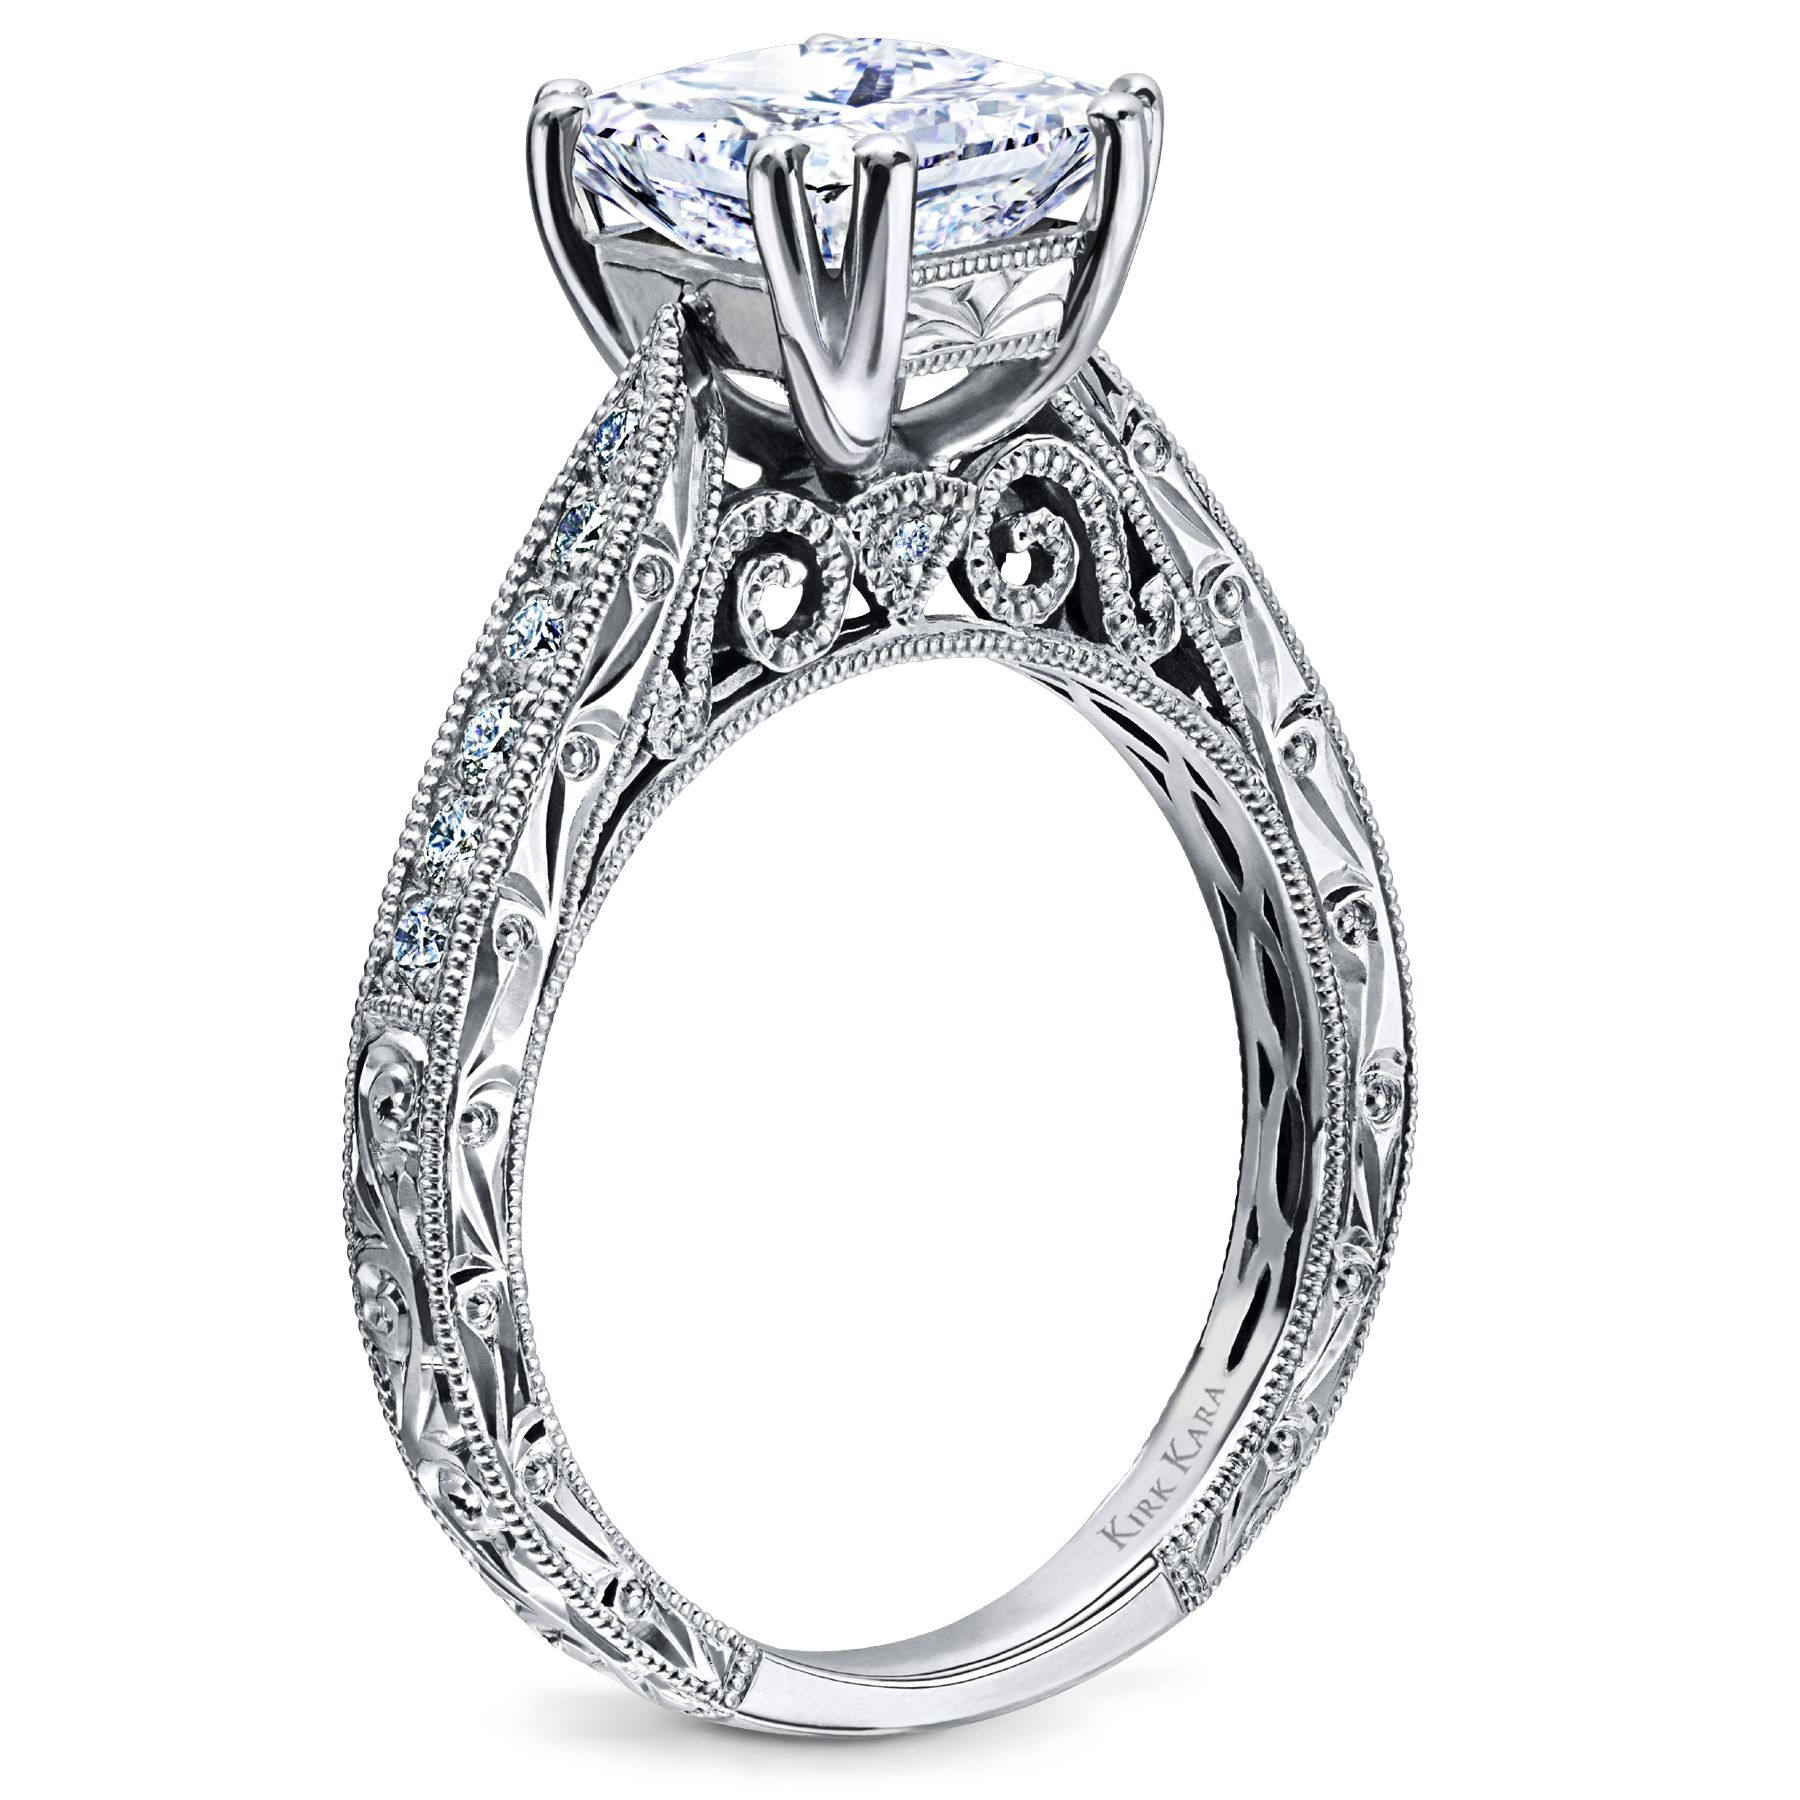 com wedding life twists tacori like rings and ring goldcasters engagement royalt from quad curves pin love